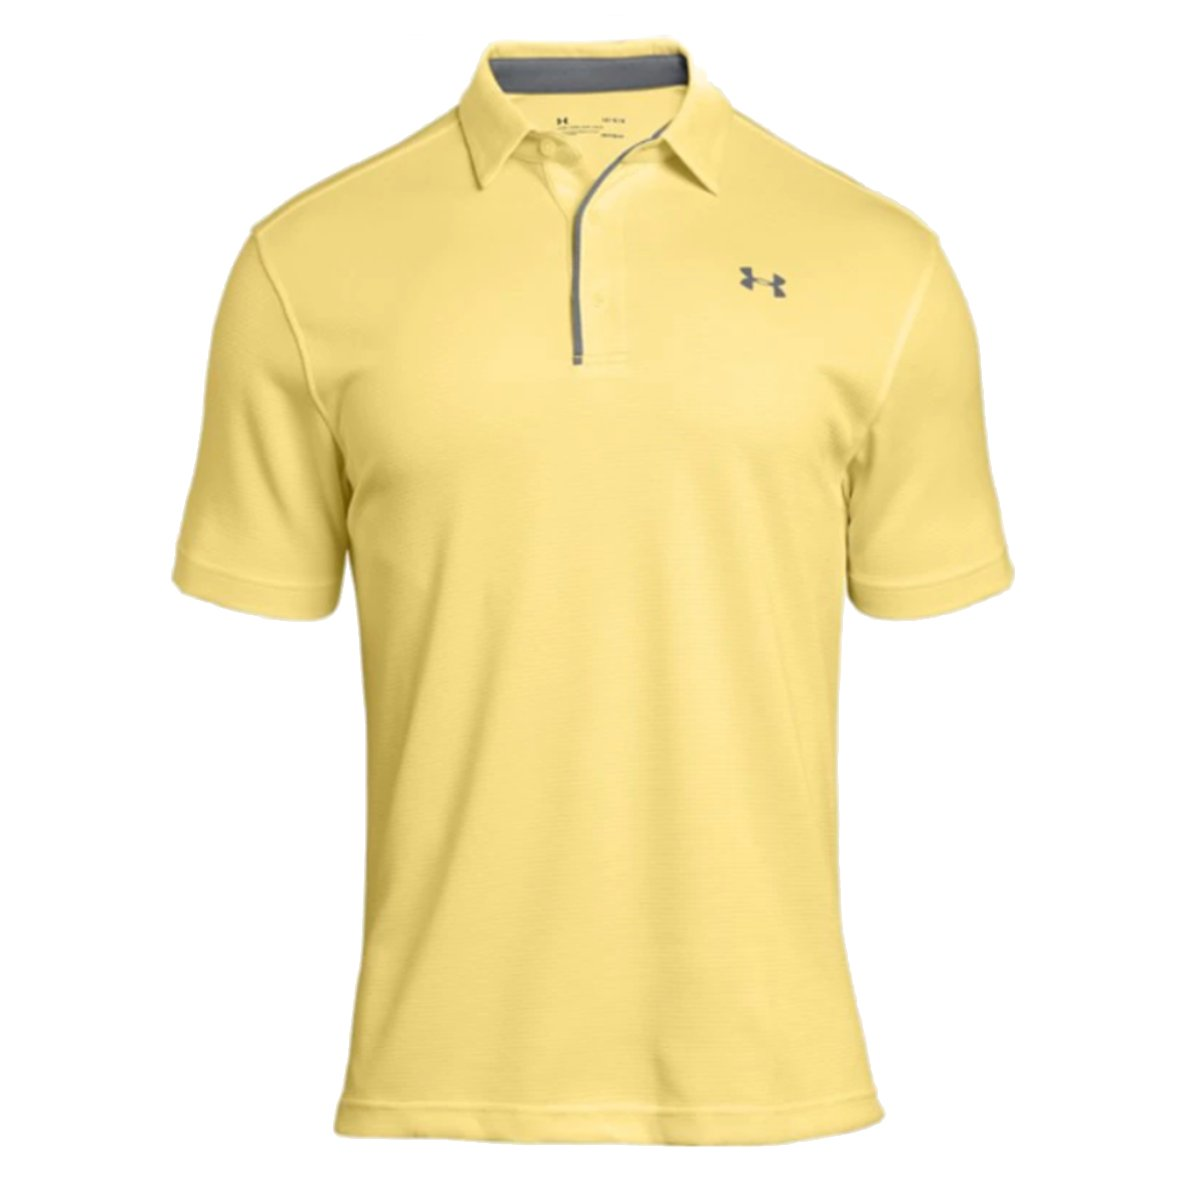 92a343c3e Galleon - Under Armour Mens Tech Polo (Medium